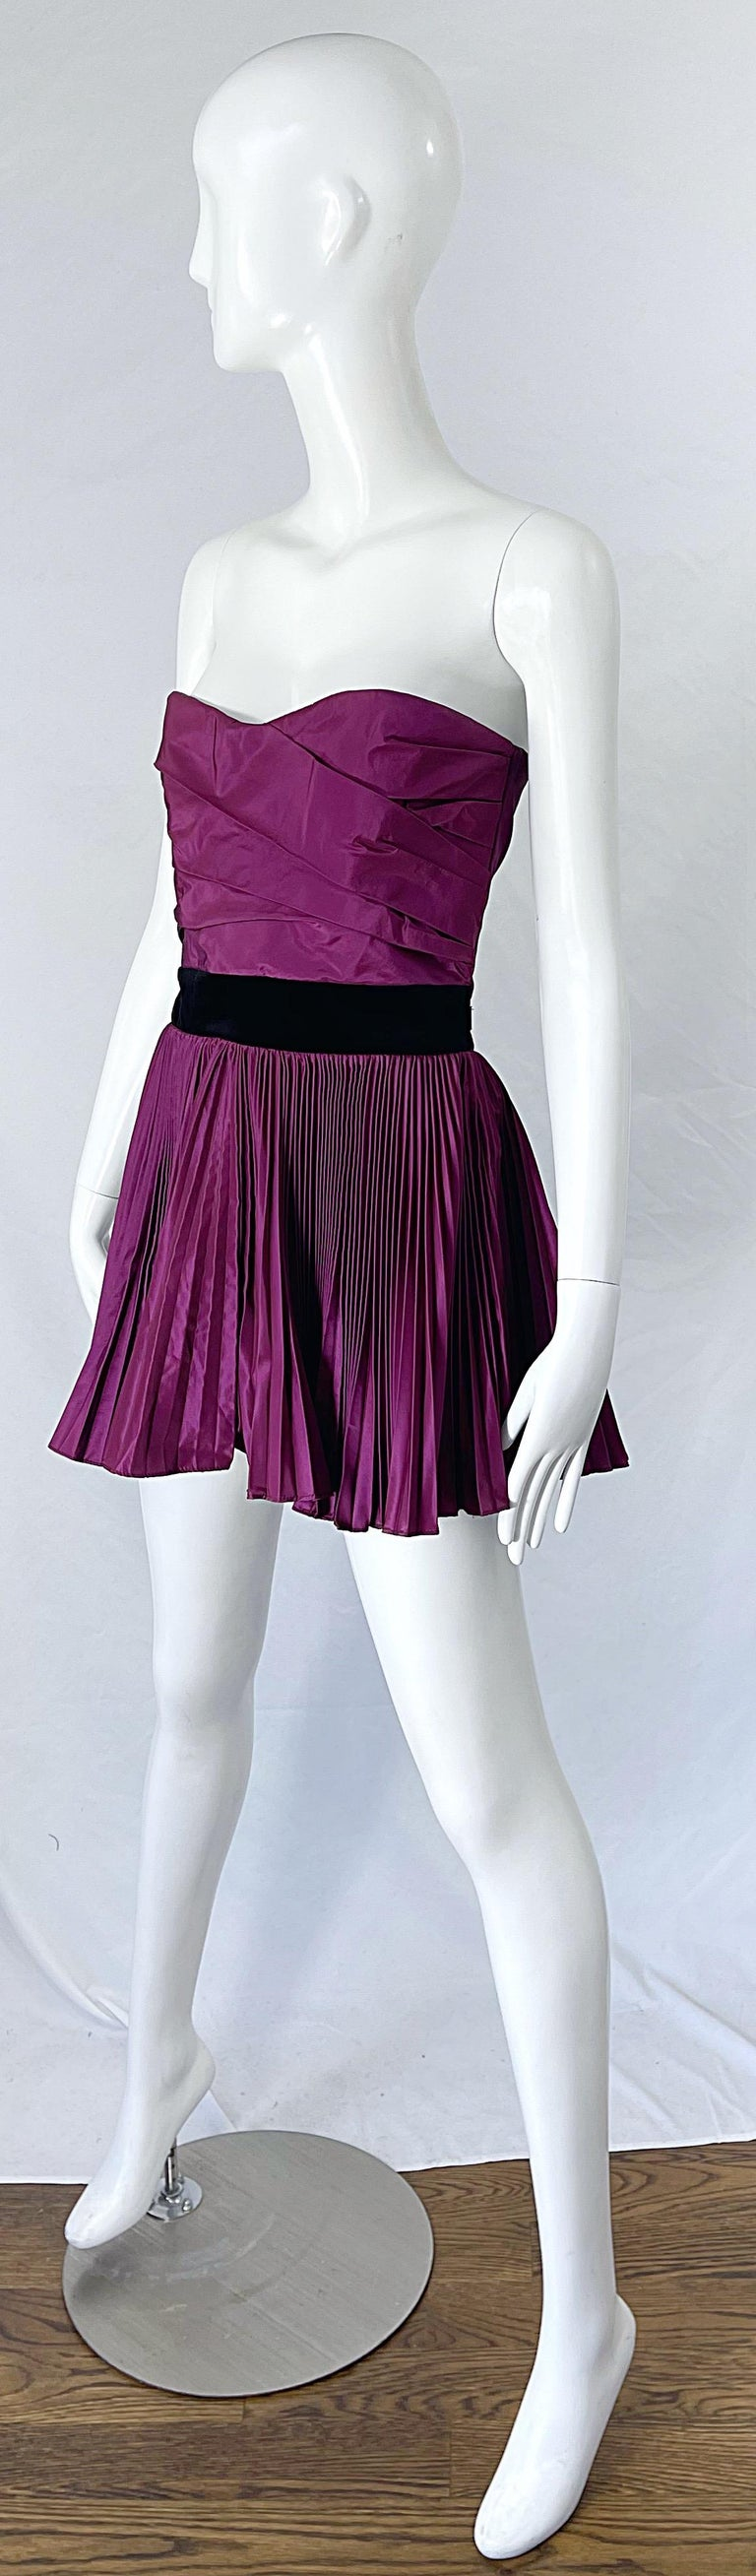 Yves Saint Laurent S/S 2012 Stefano Pilati Purple Silk Taffeta Mini Dress or Top For Sale 8